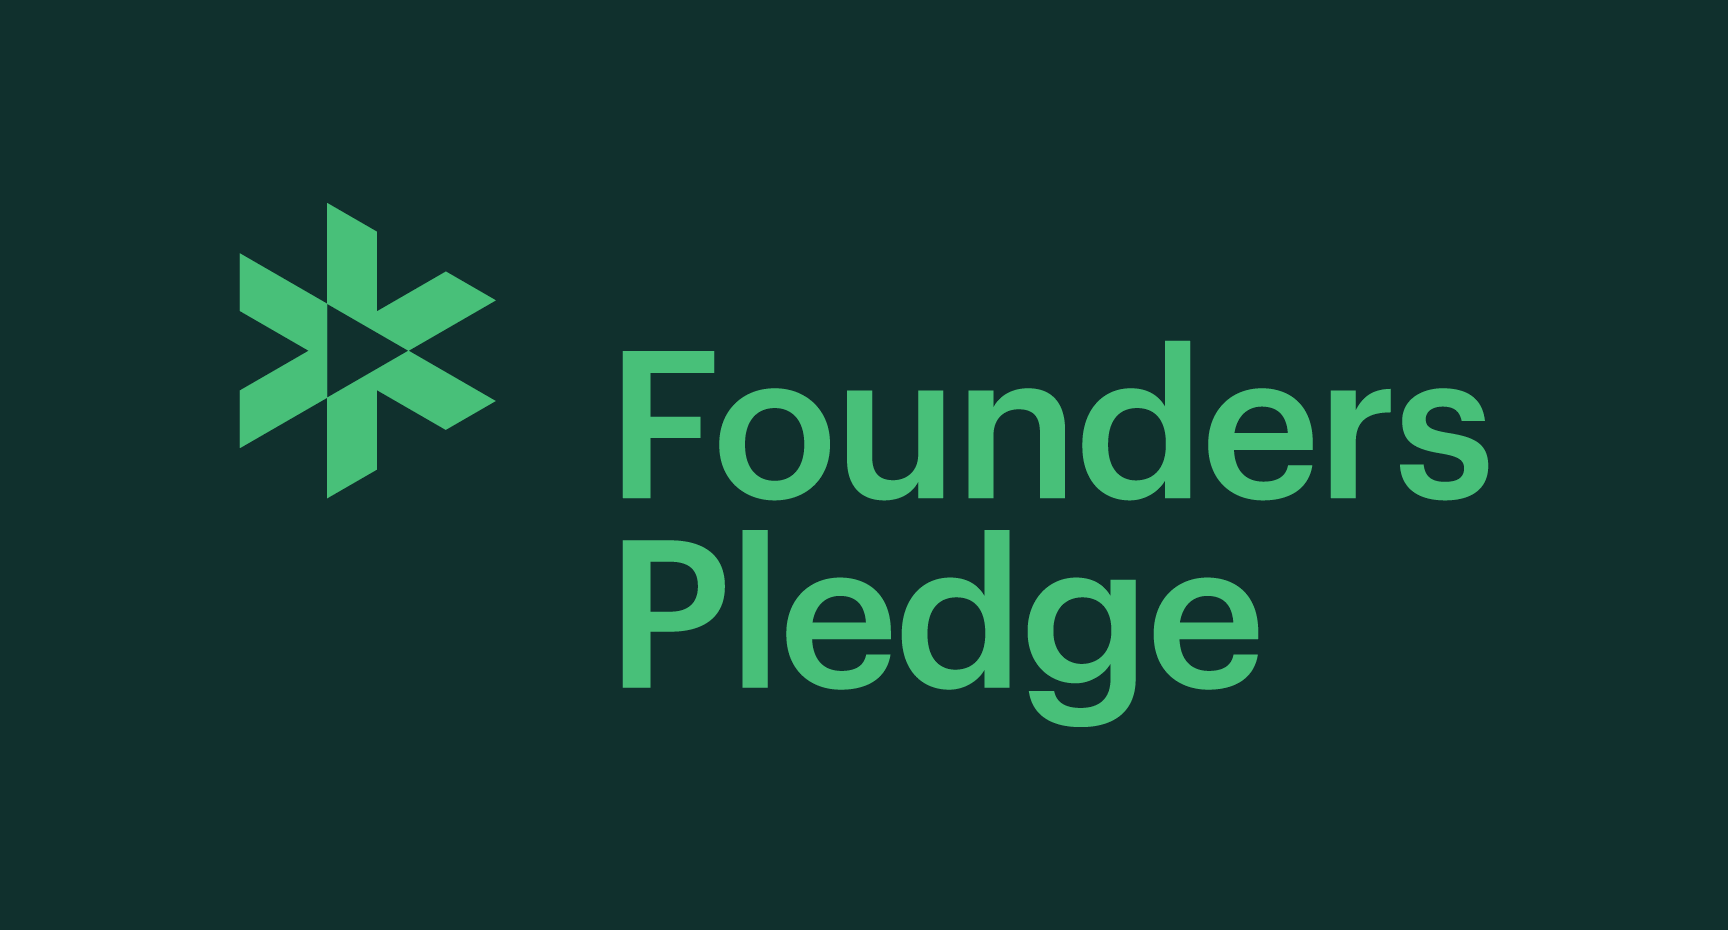 New Logo and Identity for Founders Pledge by Mast